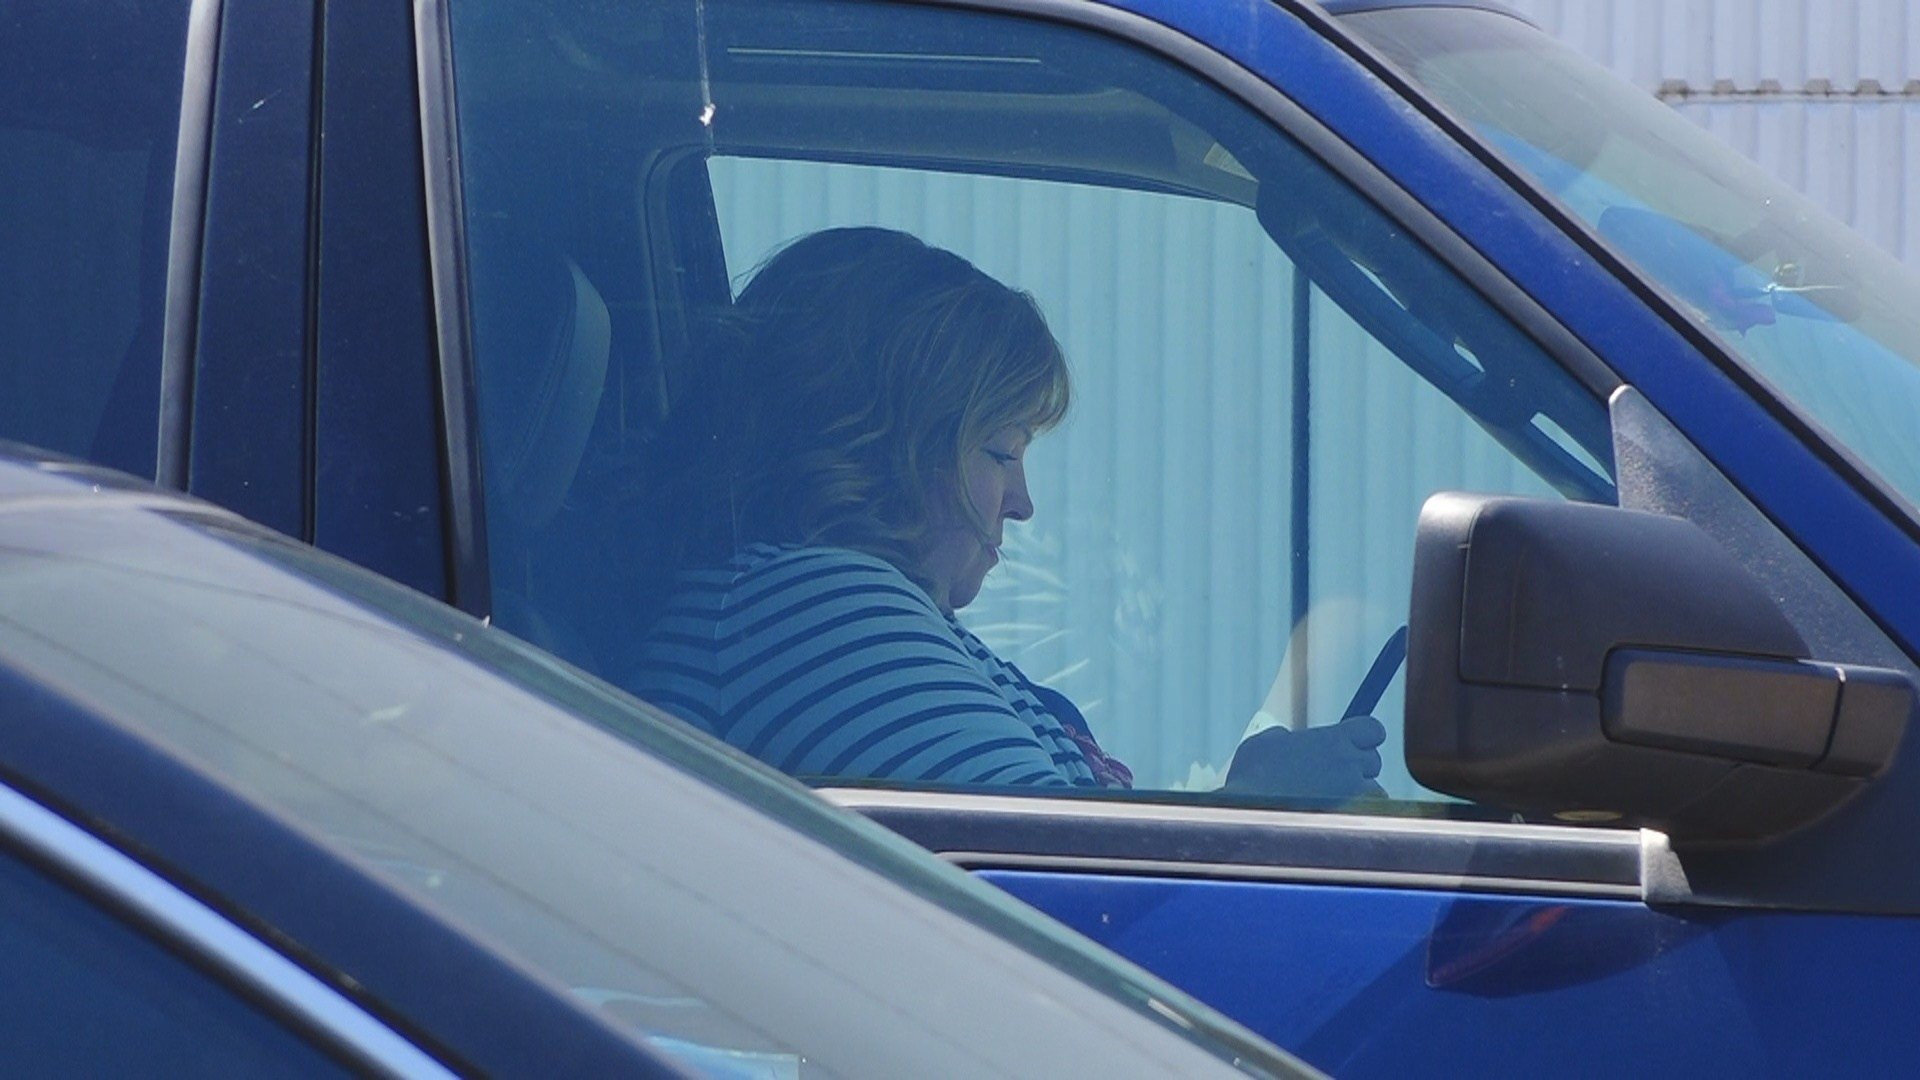 613 Texting and driving tickets were issued in WV last year.